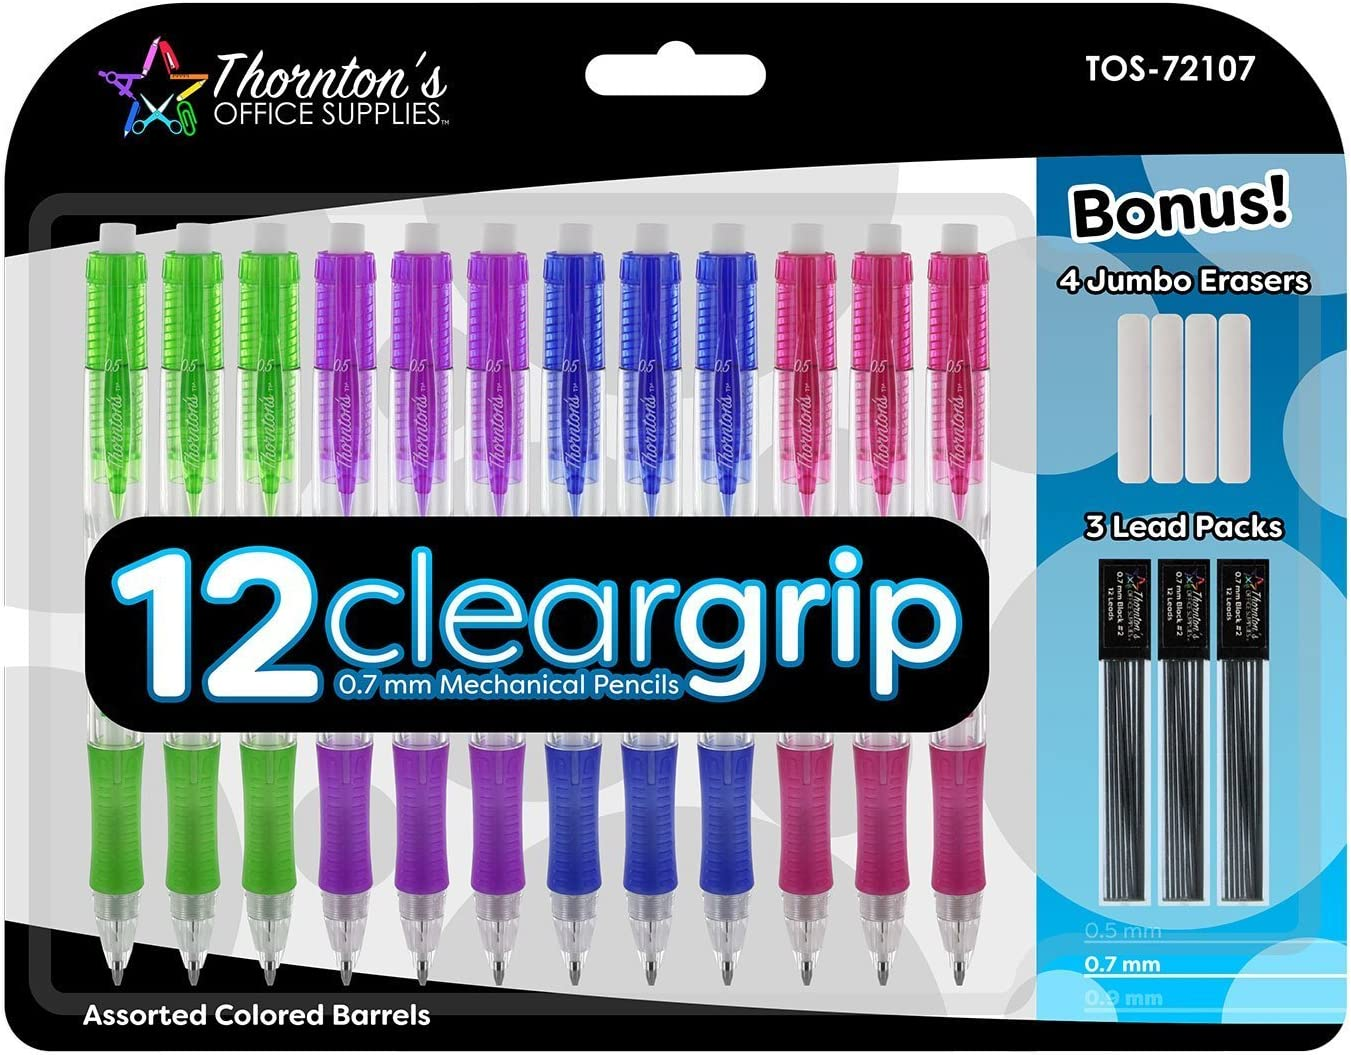 Thornton's Office Supplies ClearGrip Mechanical Pencil Starter Set 0.7mm Assorted Colors Pack of 12 for Smooth writing